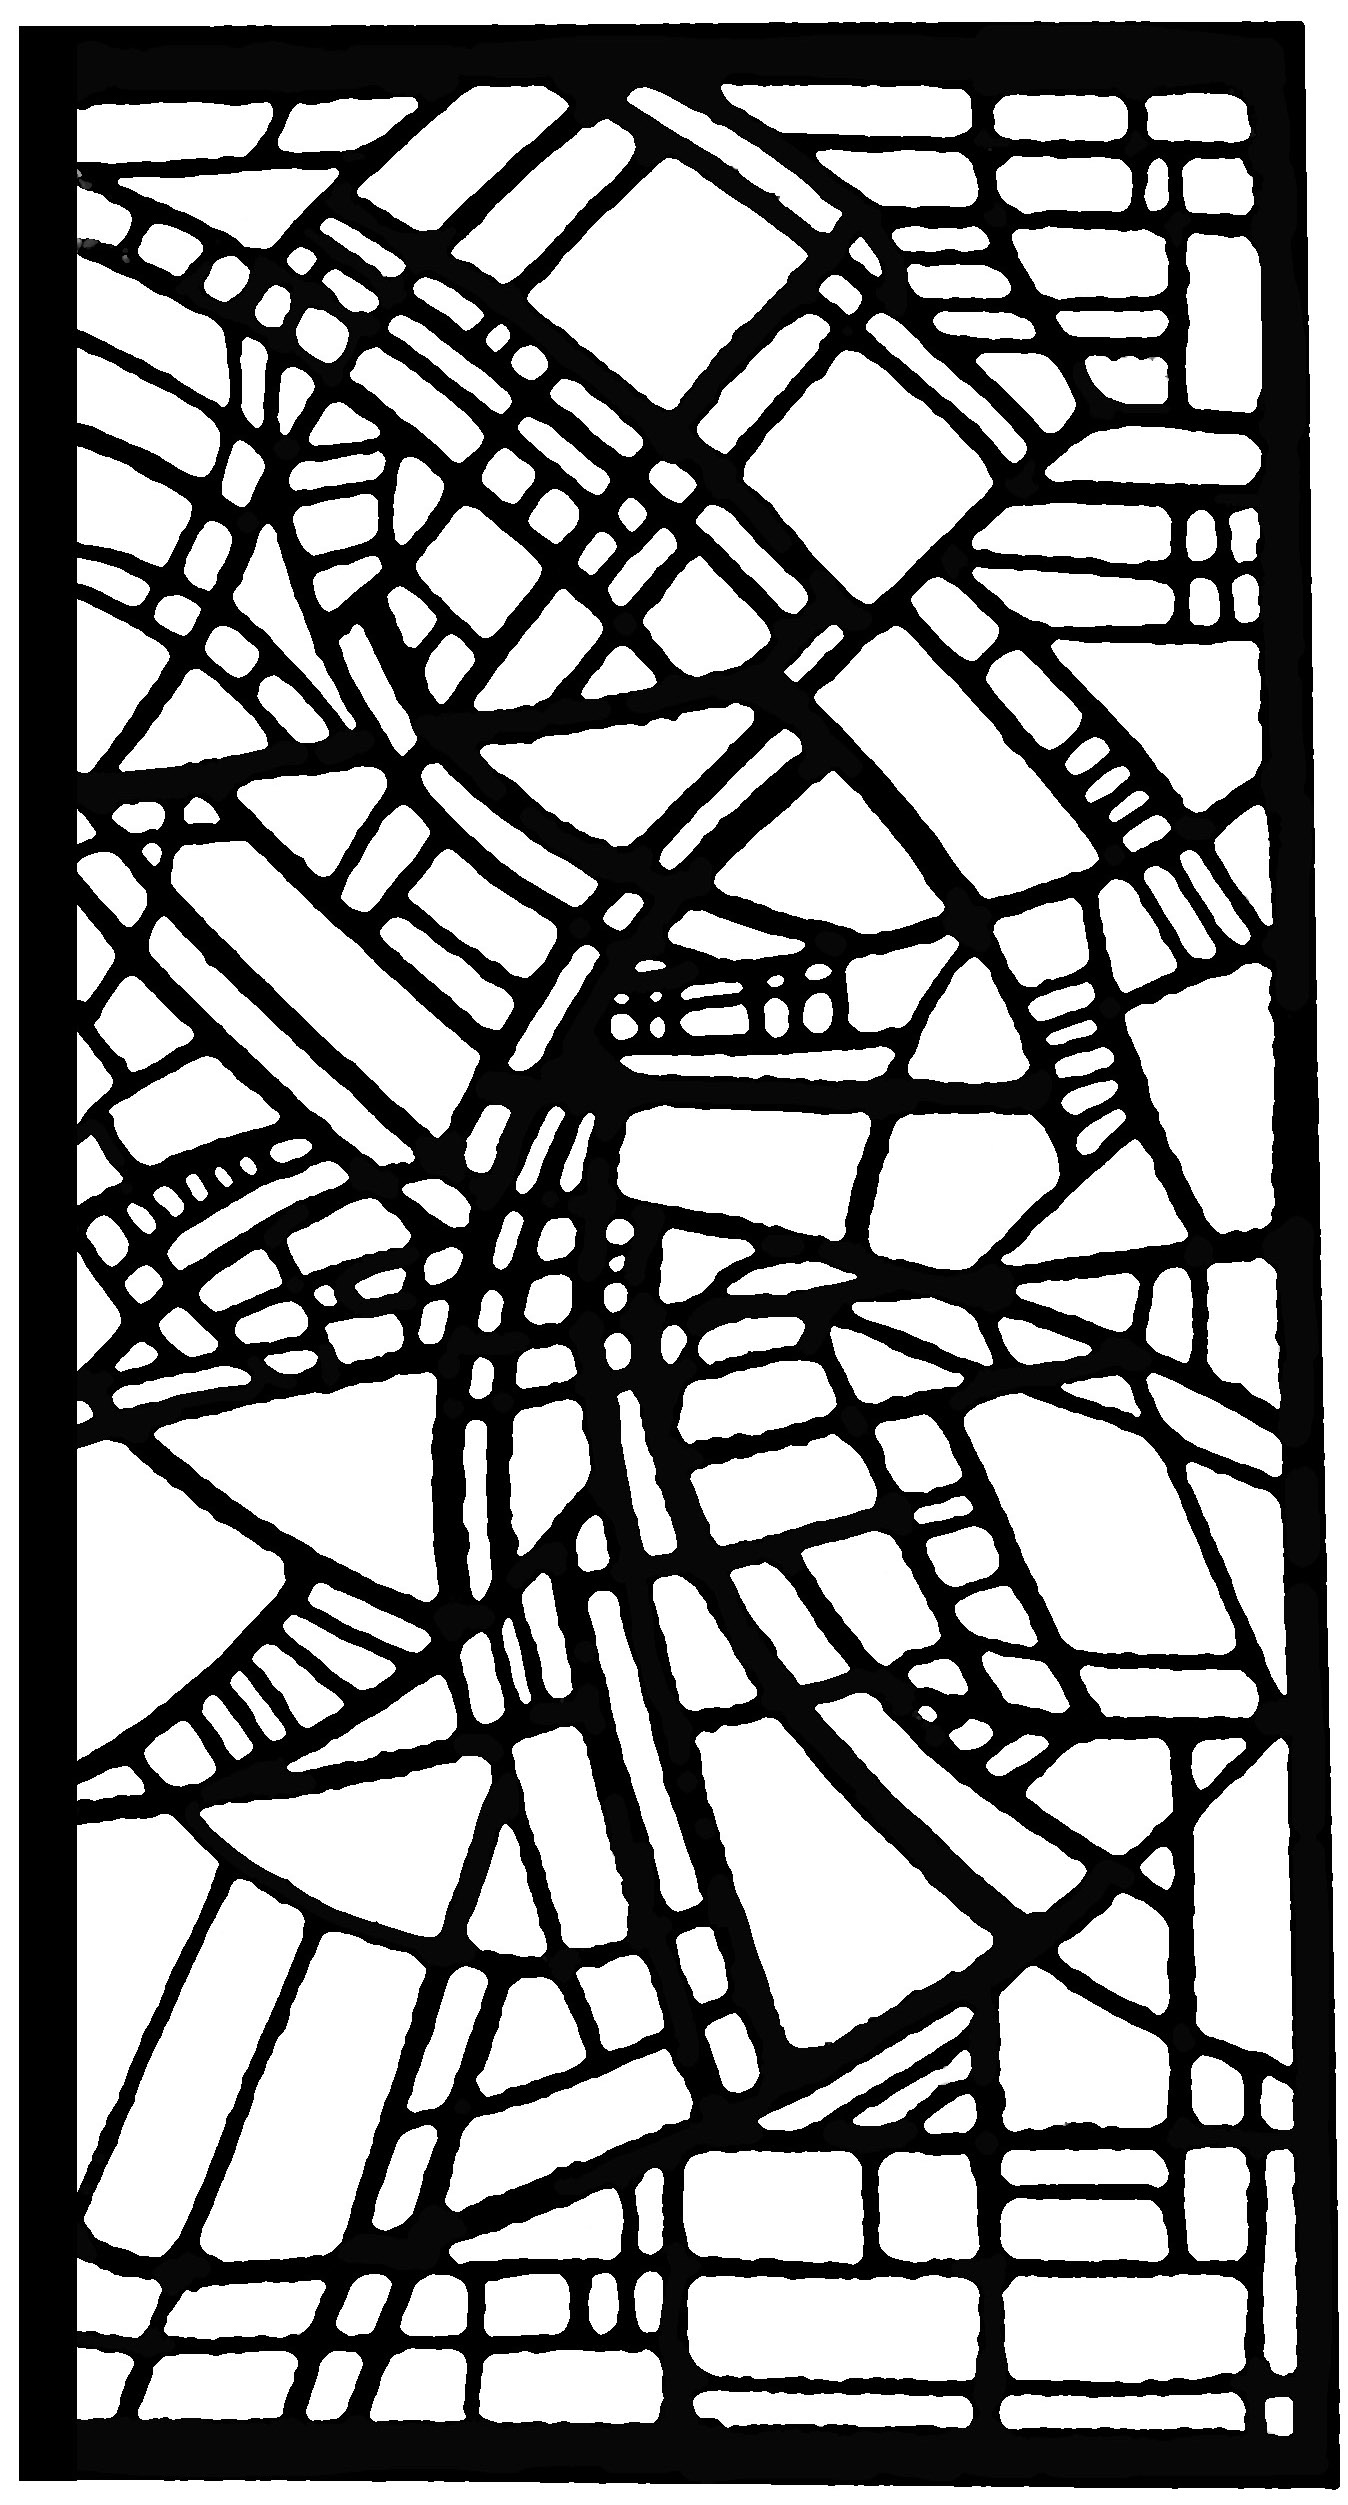 Coloring page made from a modern Stained glass : Church in Belgium, 1986